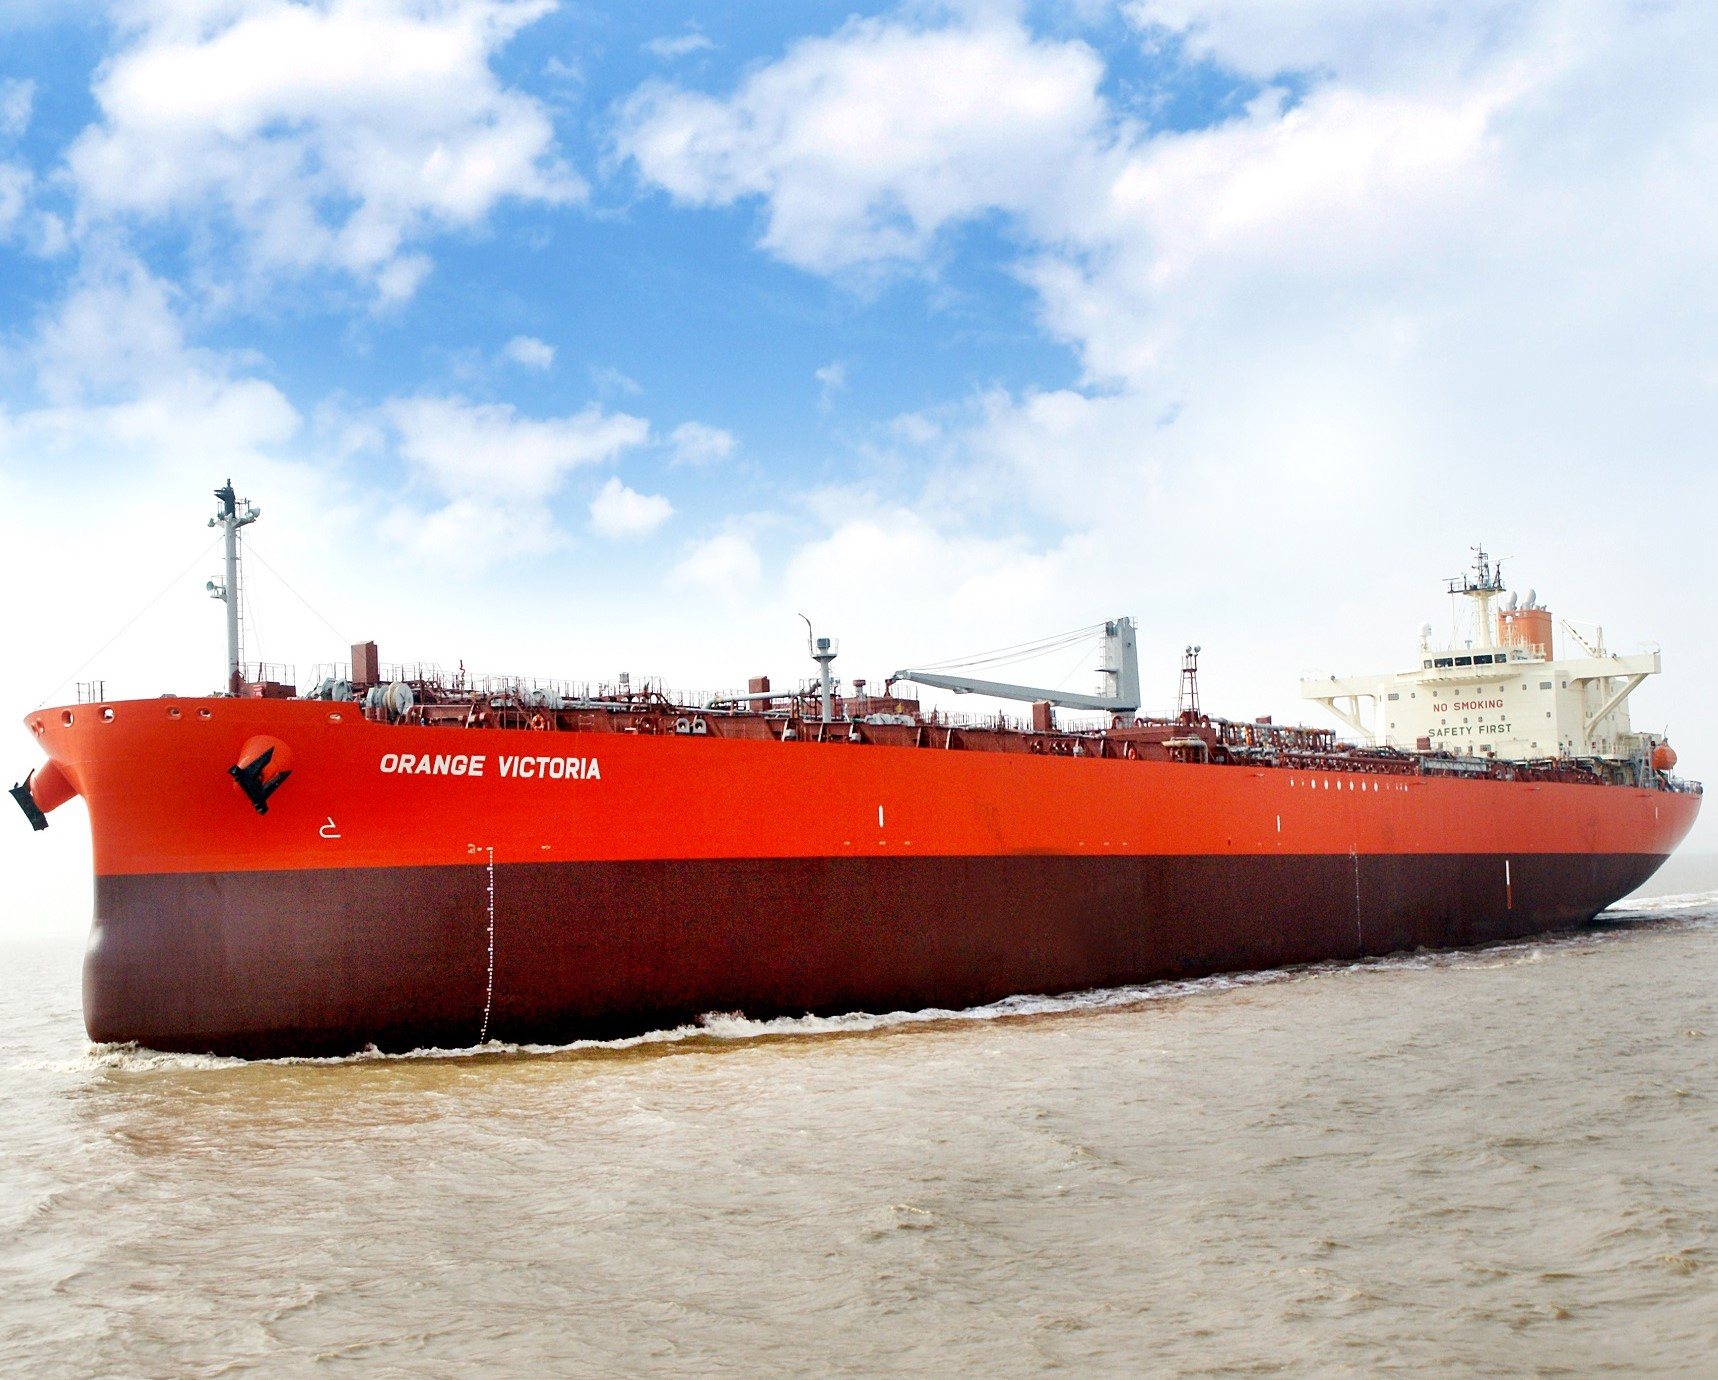 TSUNEISHI SHIPBUILDING Delivers its First LRI Product/Chemical Tanker Built at its Shipyard in China